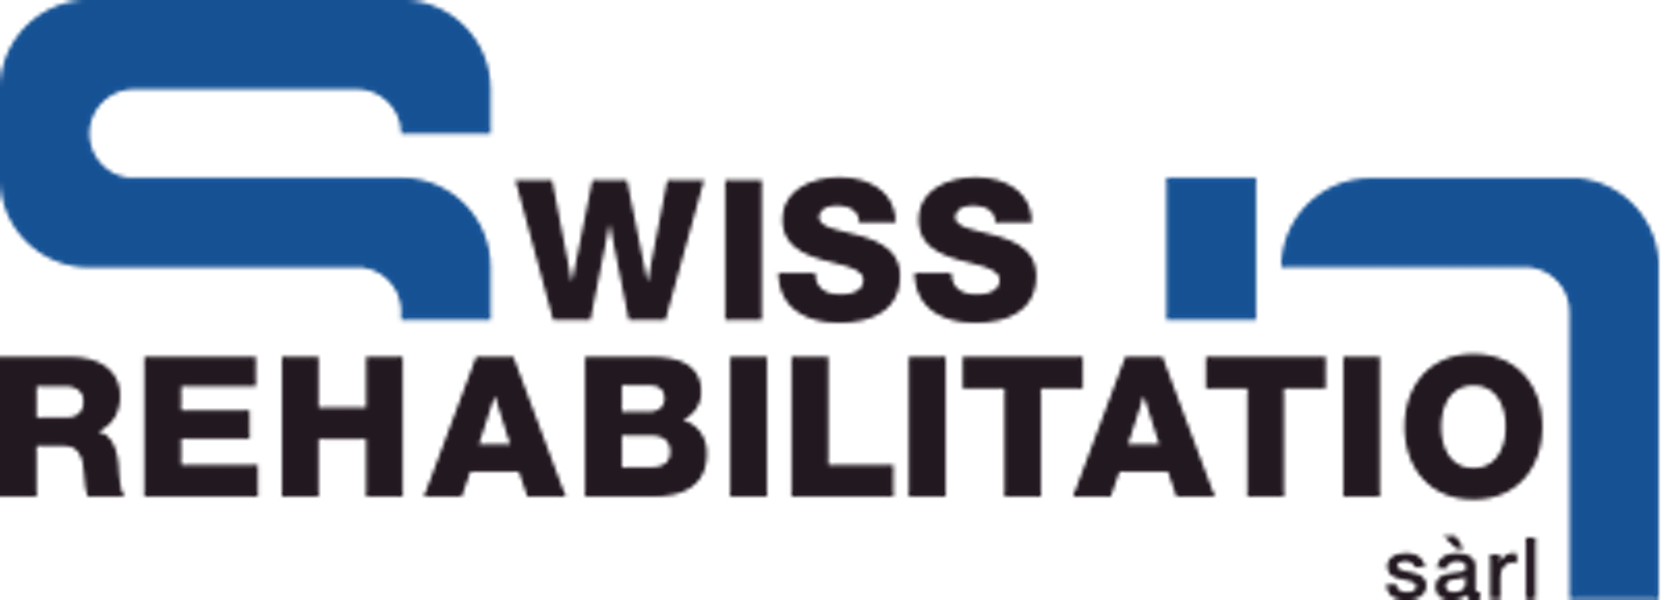 logo swissrehabilitation